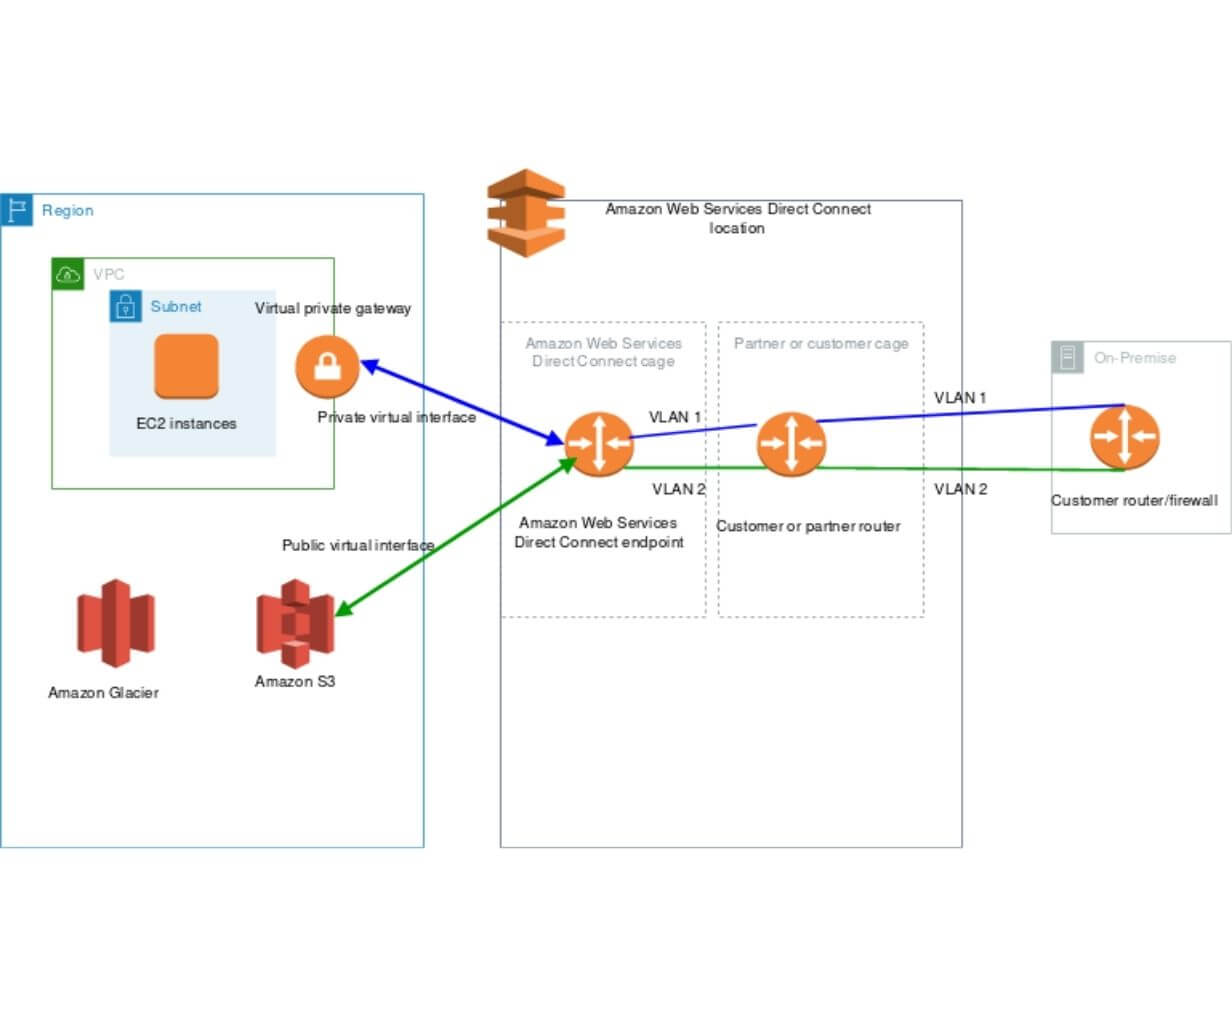 AWS Direct Connect 1